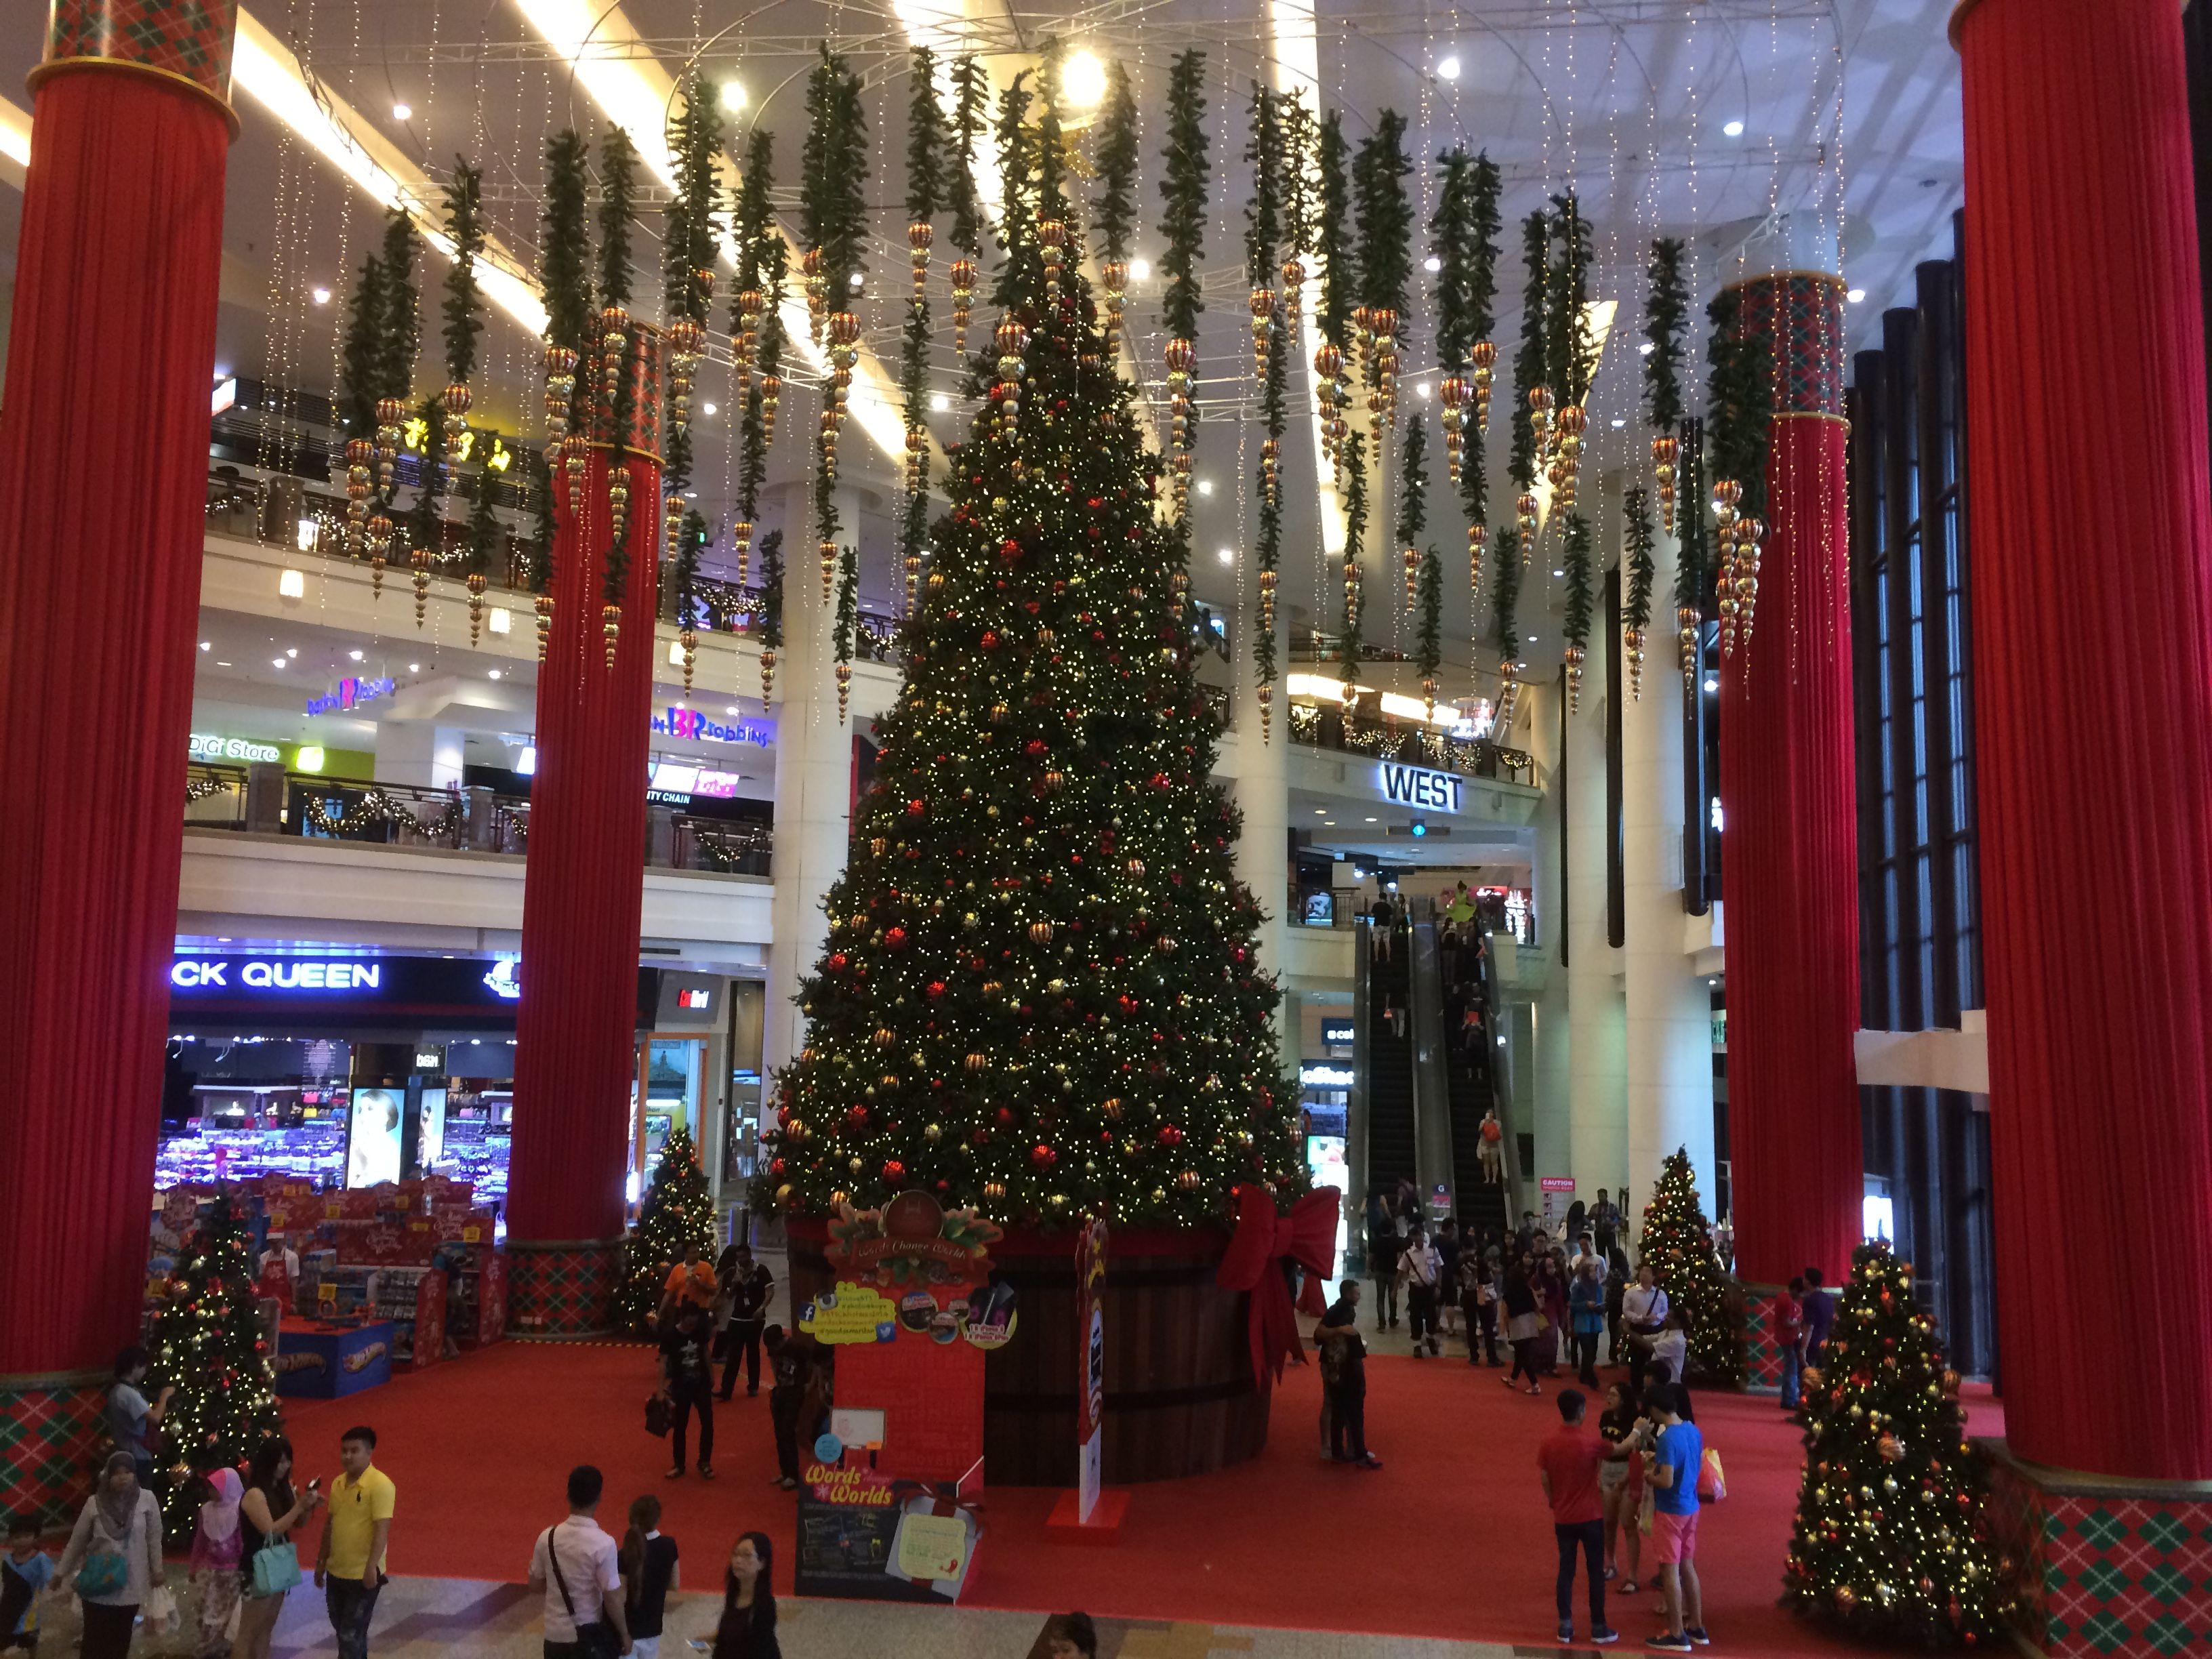 toys r us pop up store time square shopping mall kuala lumpur toys layout lifestyle visual merchandising wwwclearretailgroupeu - What Time Does Toys R Us Close On Christmas Eve